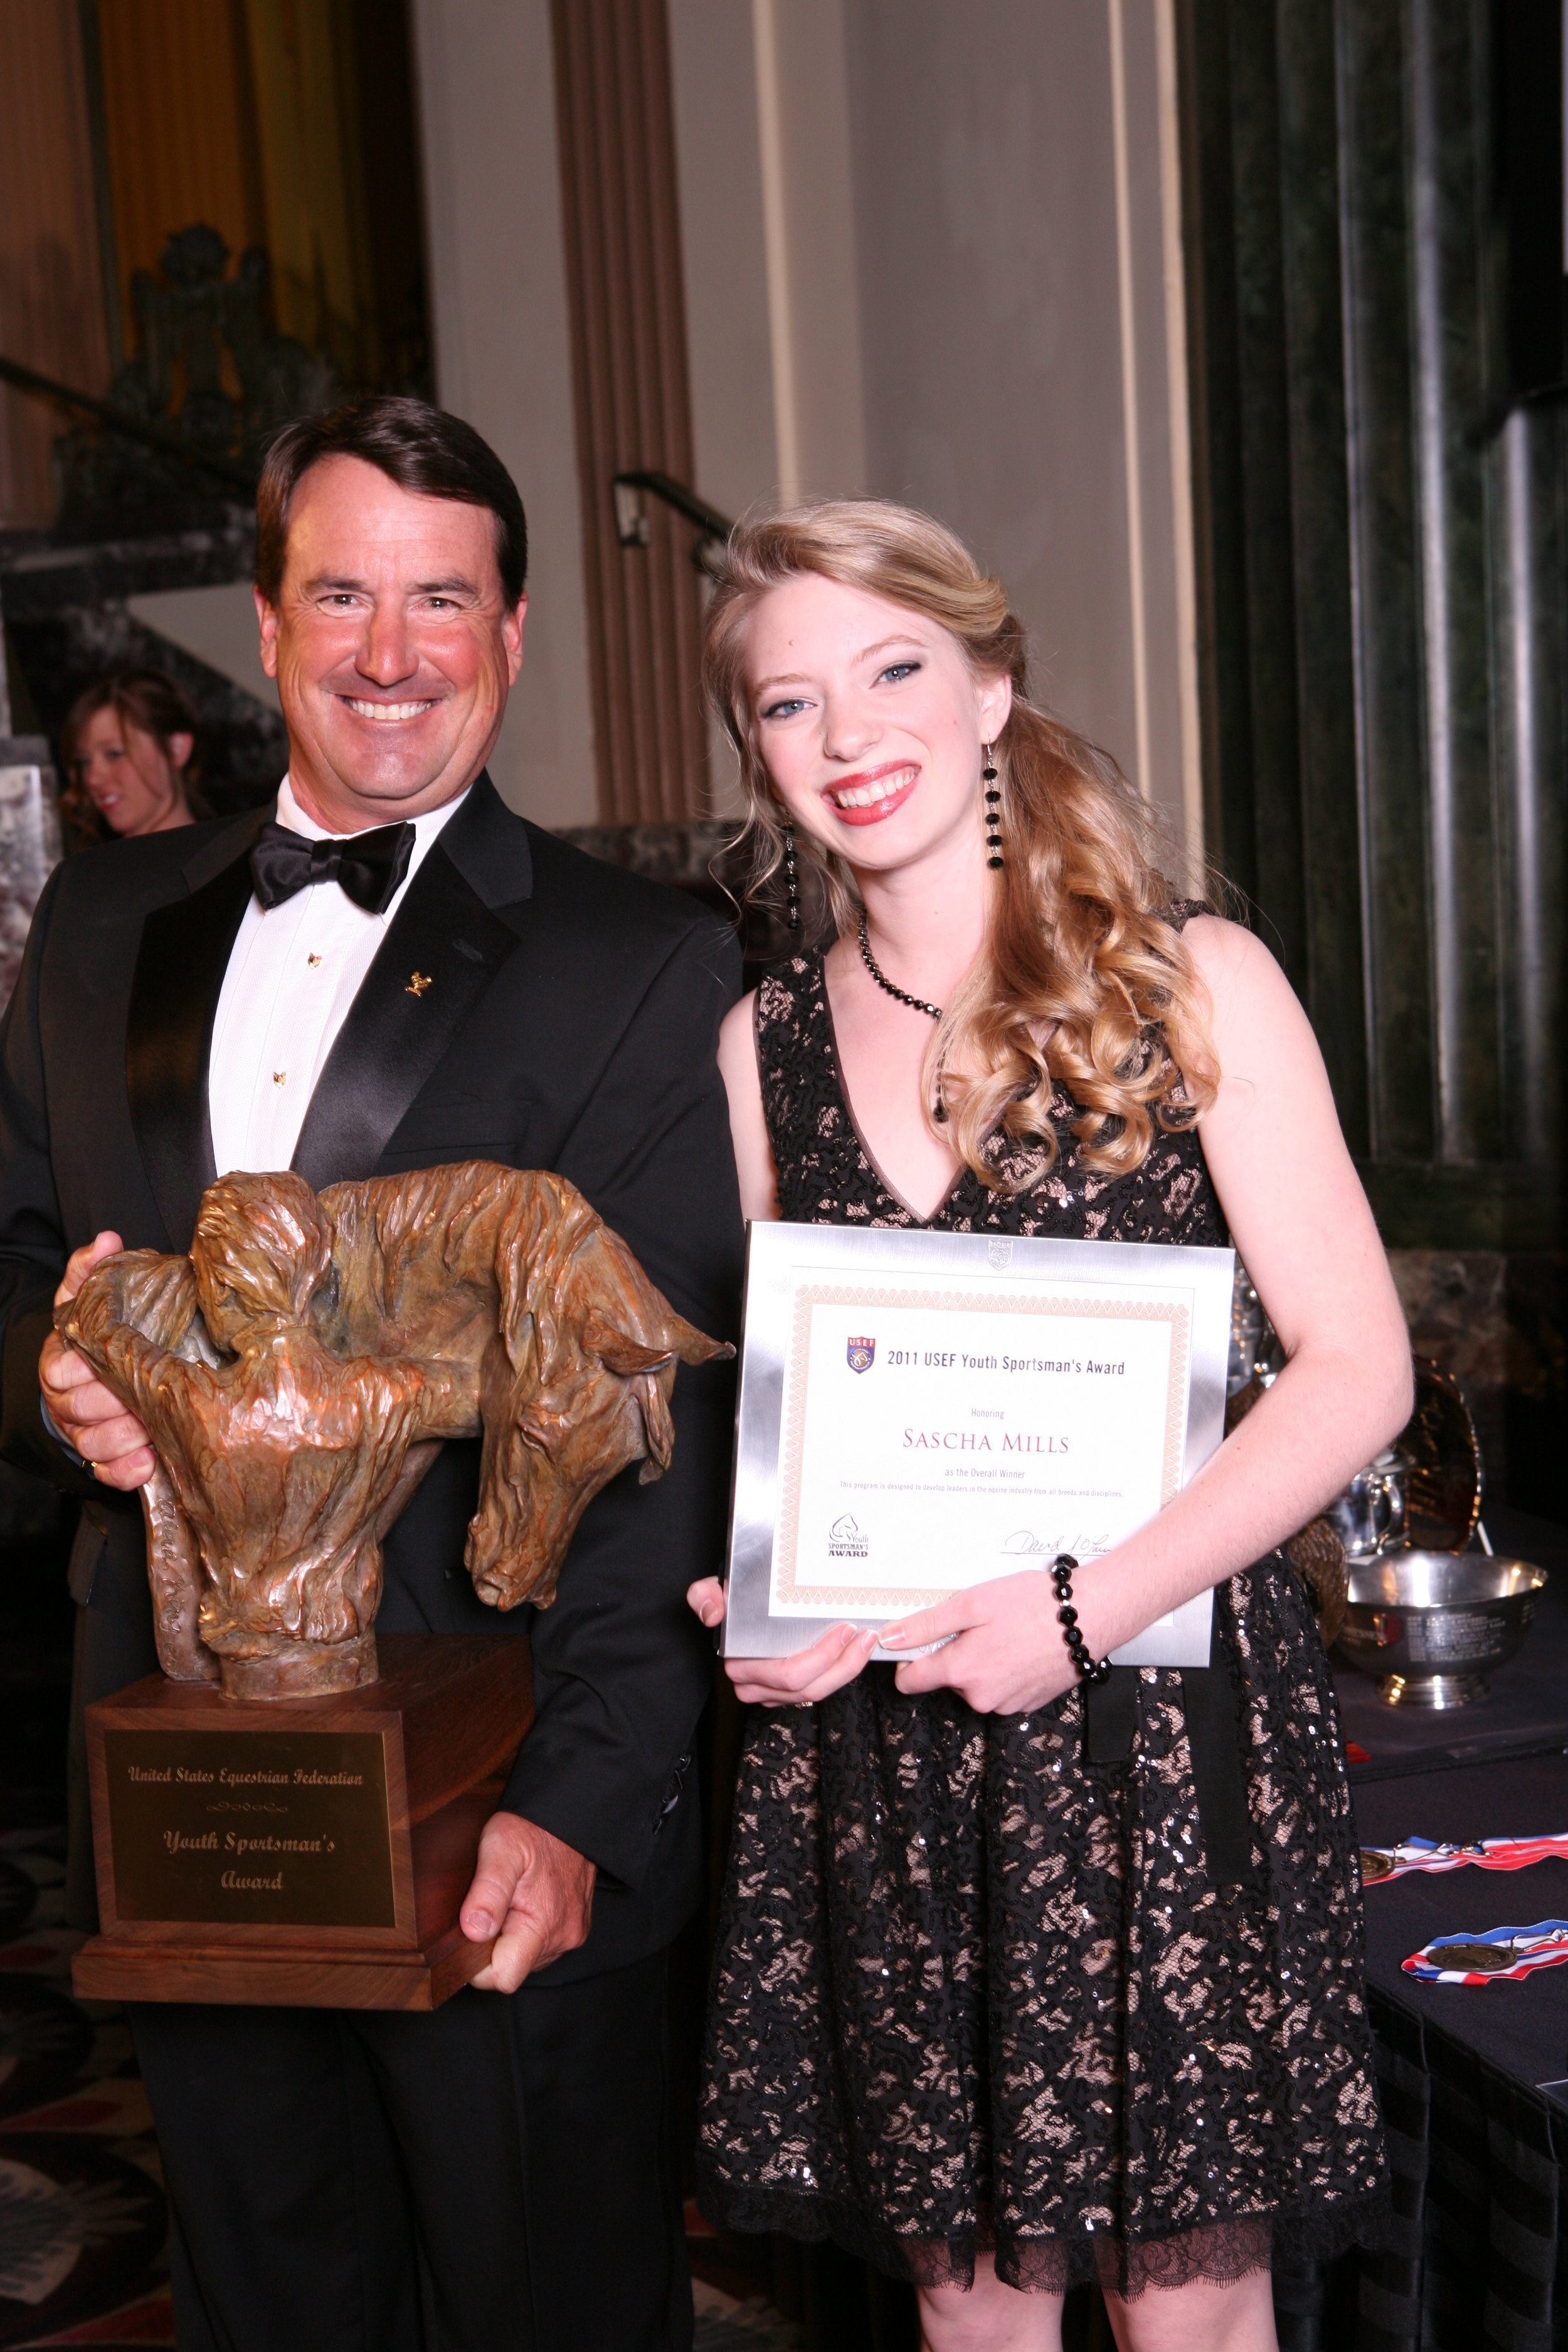 Sascha Mills receives the 2011 USEF Youth Sportsman's Award from USEF President David O'Connor. Photo courtesy USEF Archive/Geoff Bugbee.